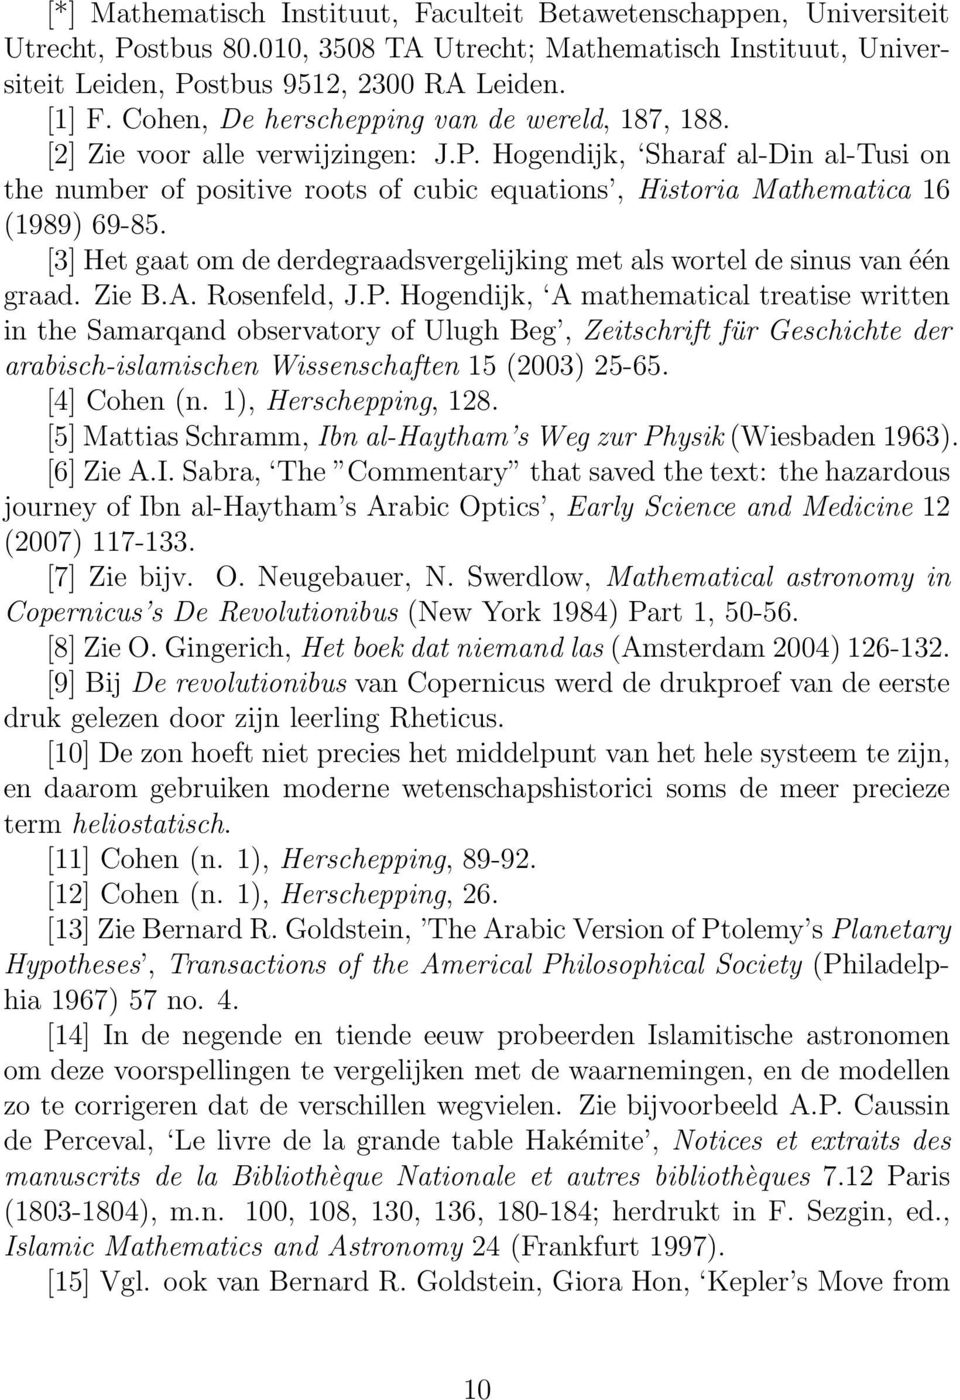 Hogendijk, Sharaf al-din al-tusi on the number of positive roots of cubic equations, Historia Mathematica 16 (1989) 69-85.